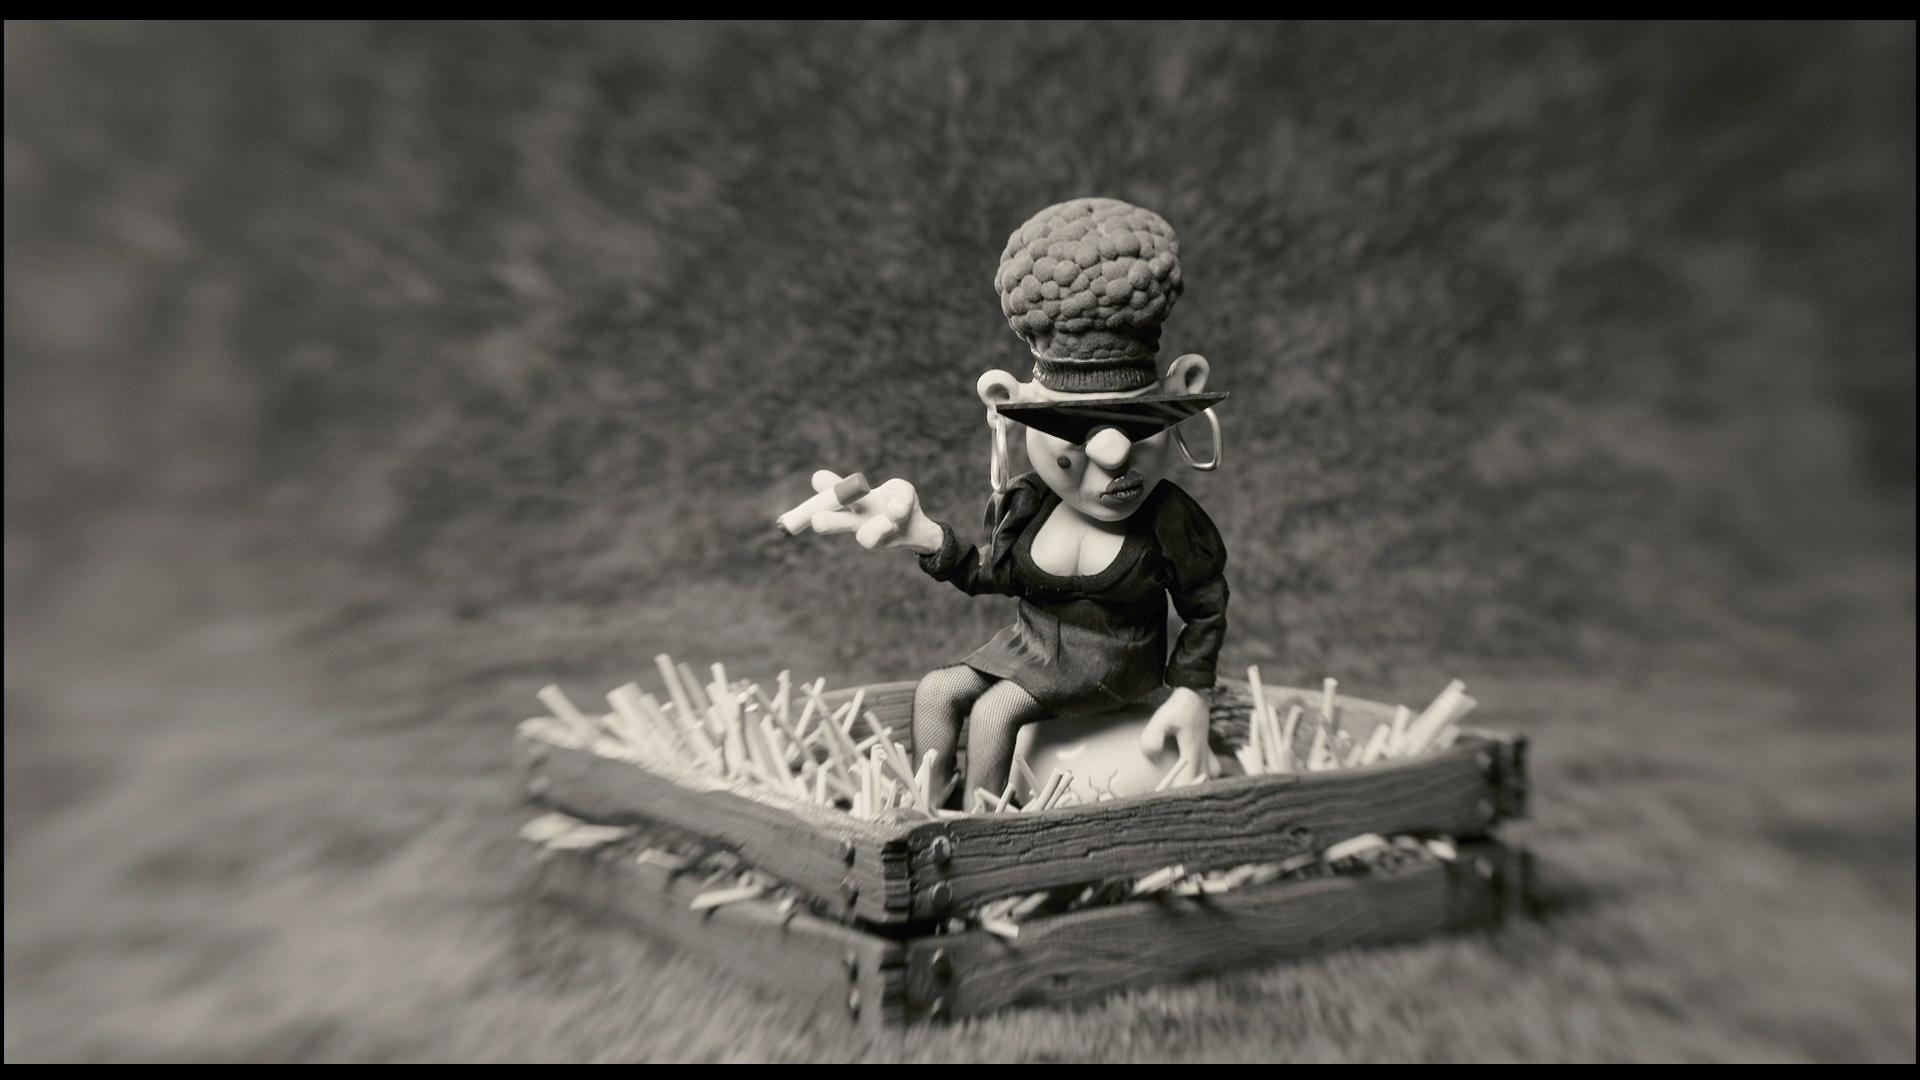 Hd Picture Of Mary And Max Desktop Wallpaper Of Plasticine Cartoon Imagebank Biz